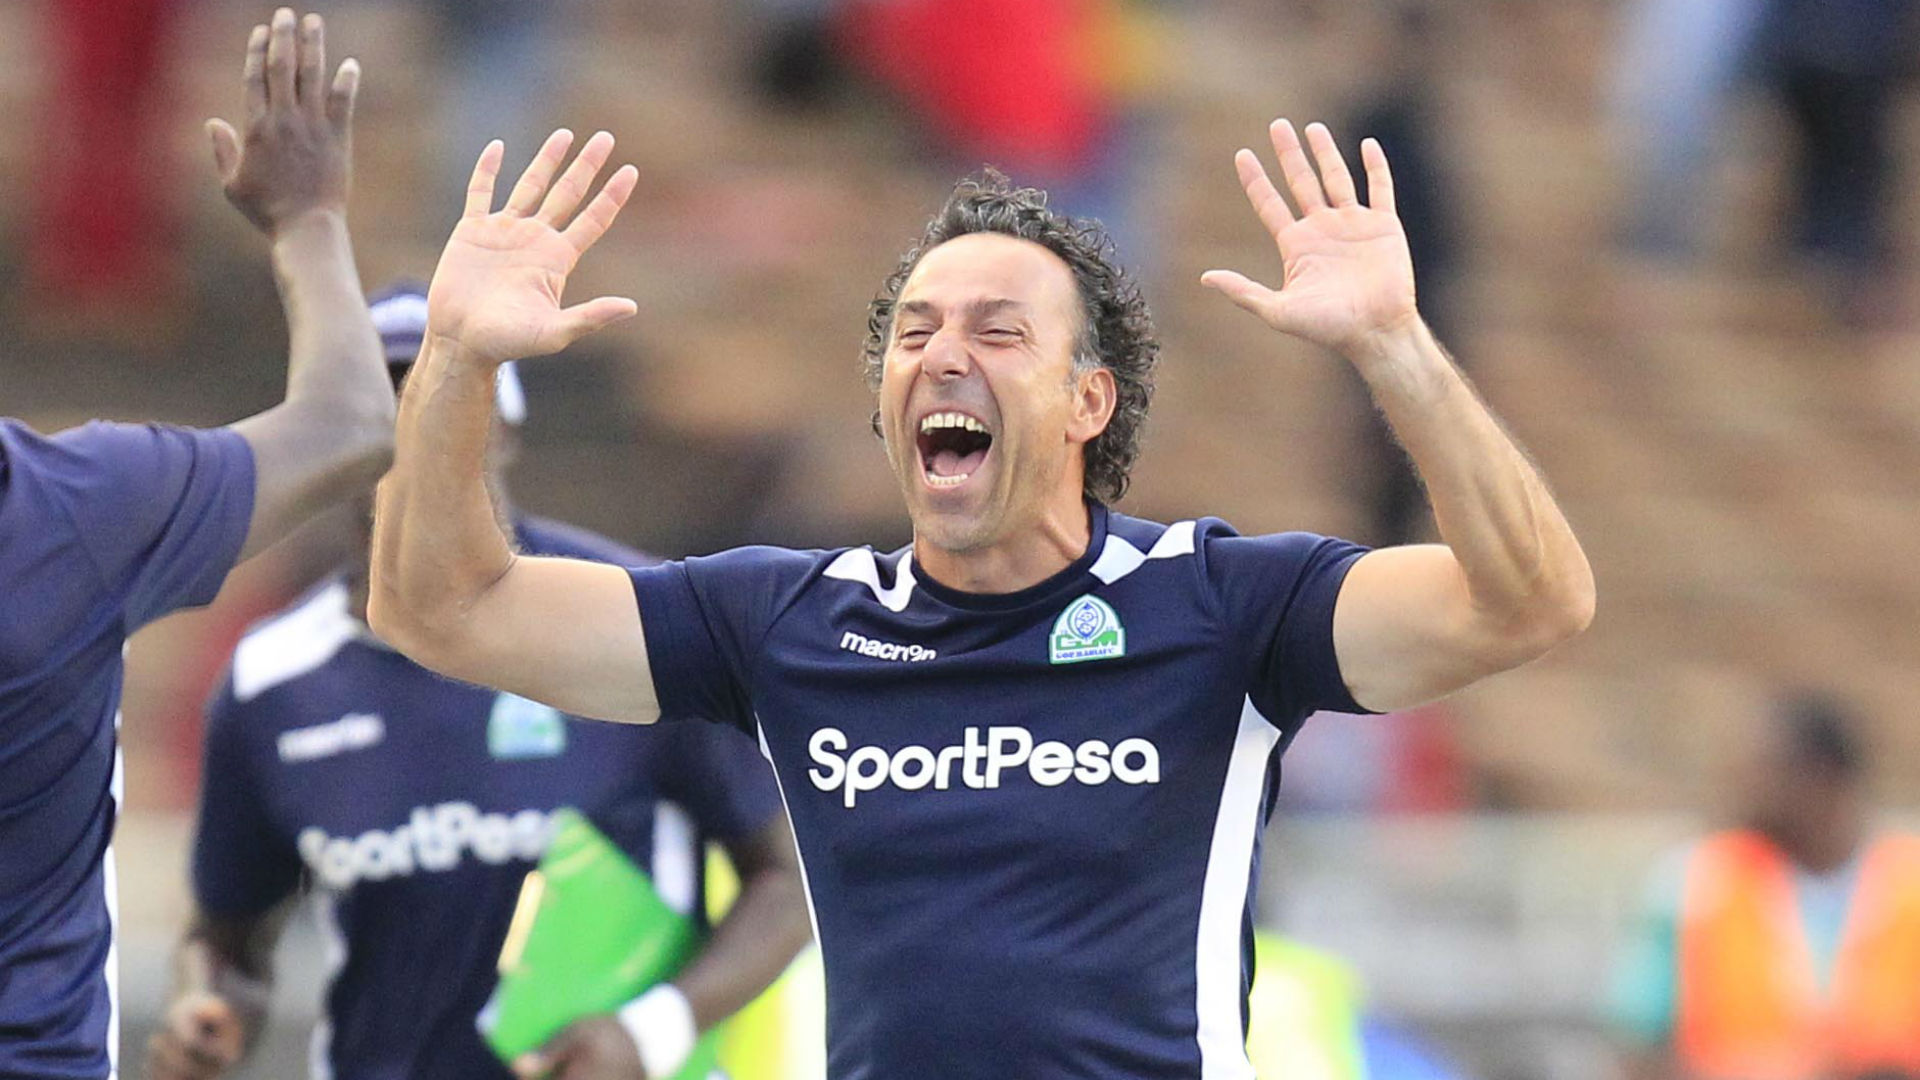 18 and still counting! Kenyans' react as Gor Mahia clinch a record third straight title